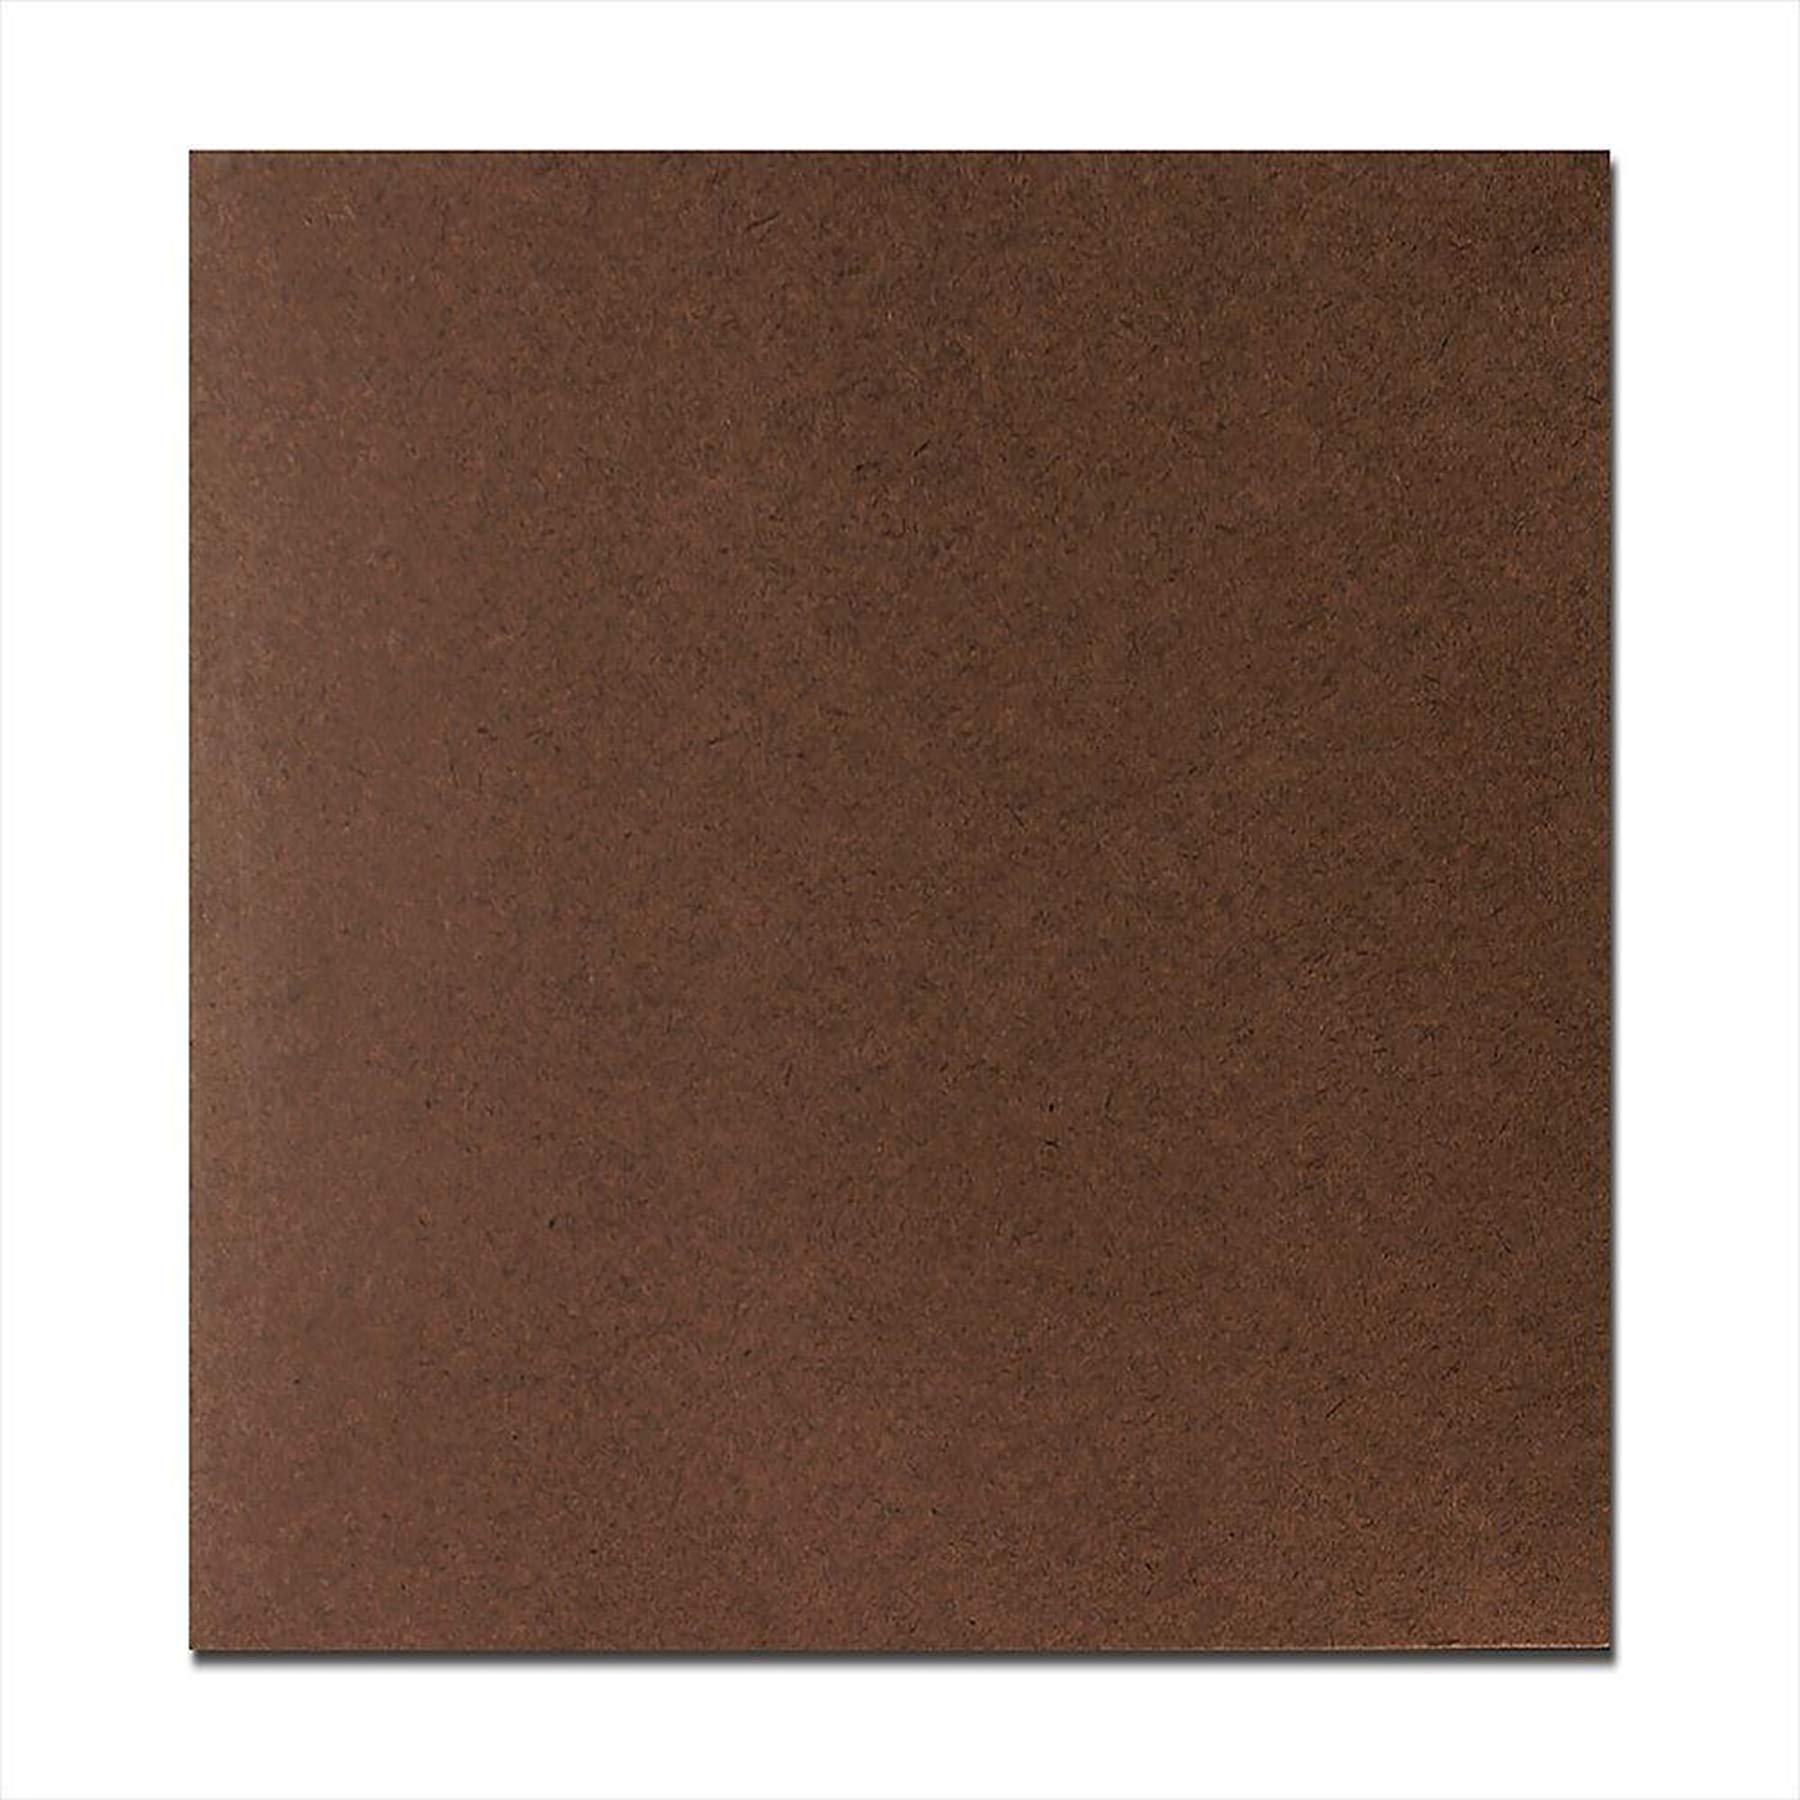 1/8 inch (3mm) 7'' X 7'' Hardboard Tempered Panel (36 Sheets) by DGwood